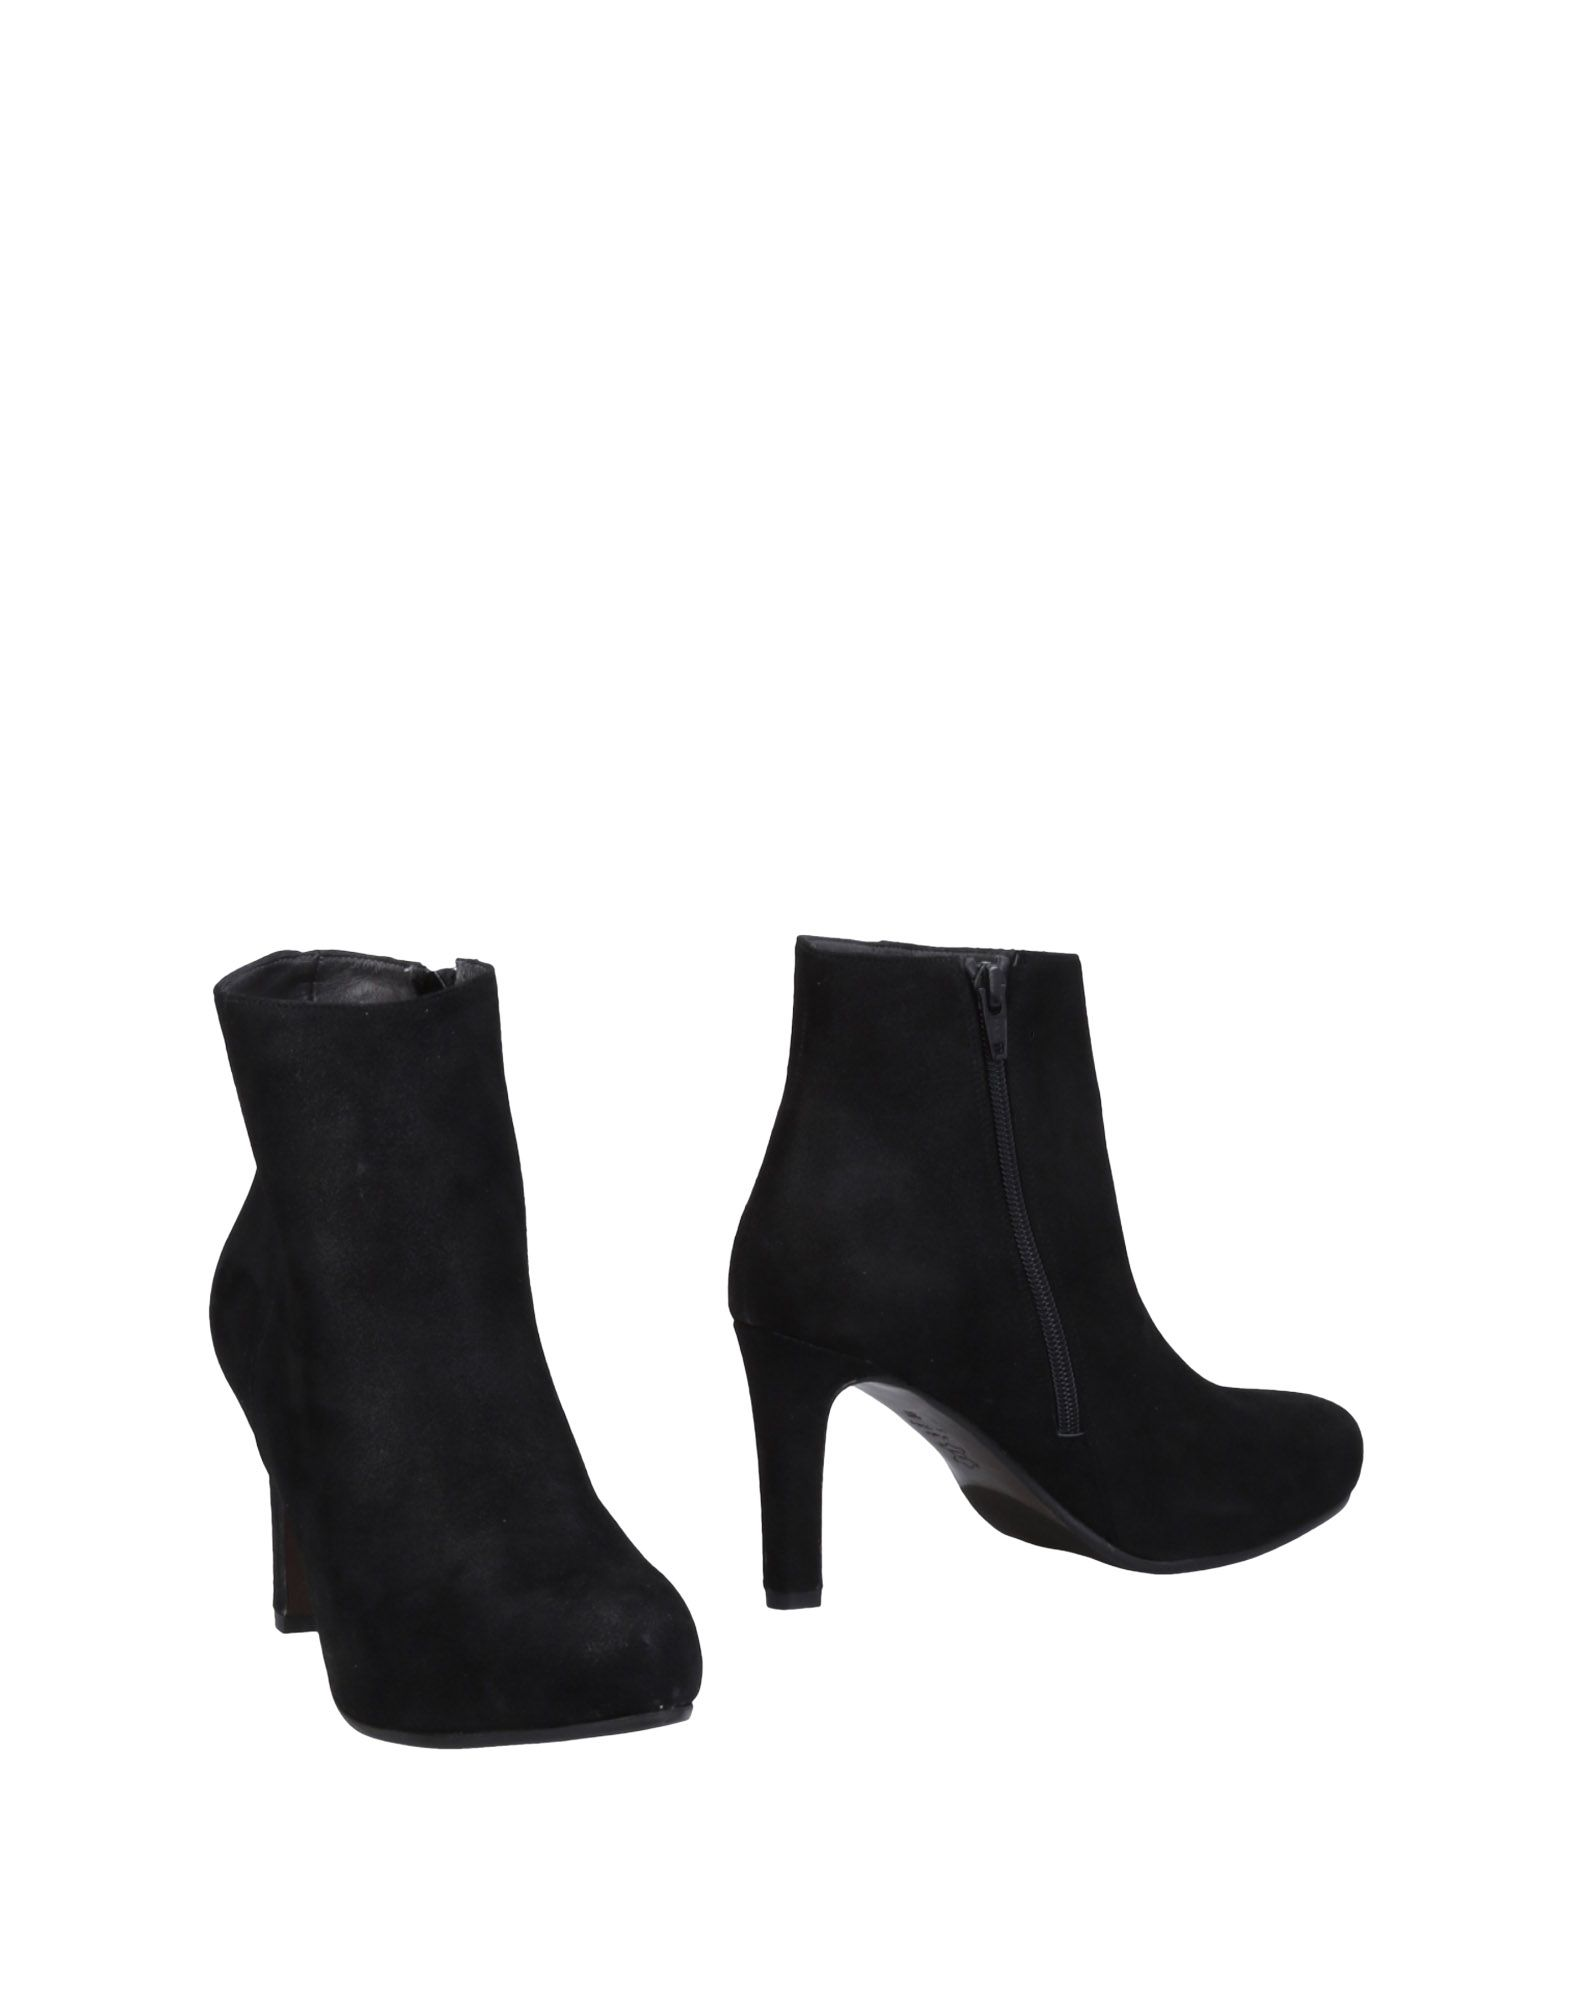 Calpierre Calpierre Ankle Boot - Women Calpierre Calpierre Ankle Boots online on  United Kingdom - 11458911SM f9bd7f